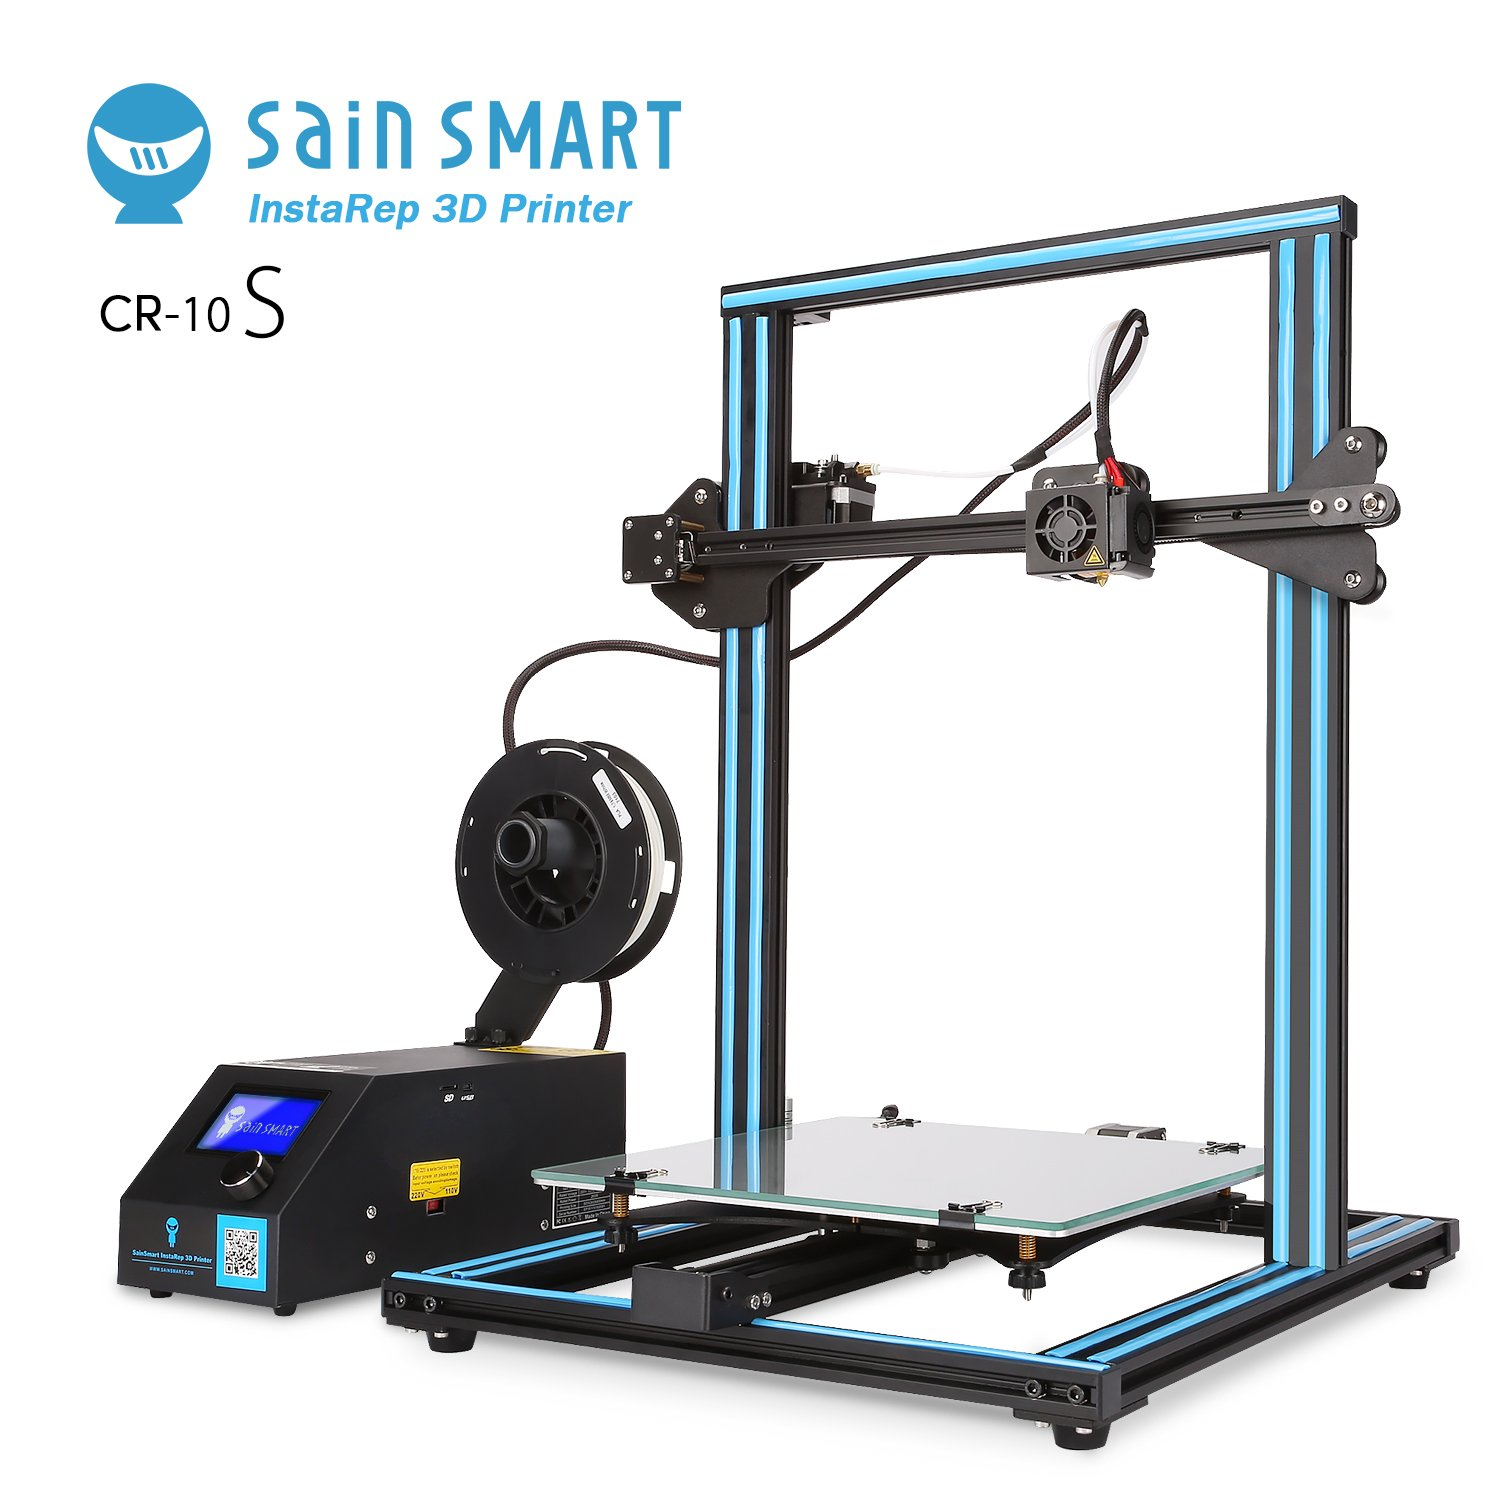 SainSmart CR-10 3D Printer